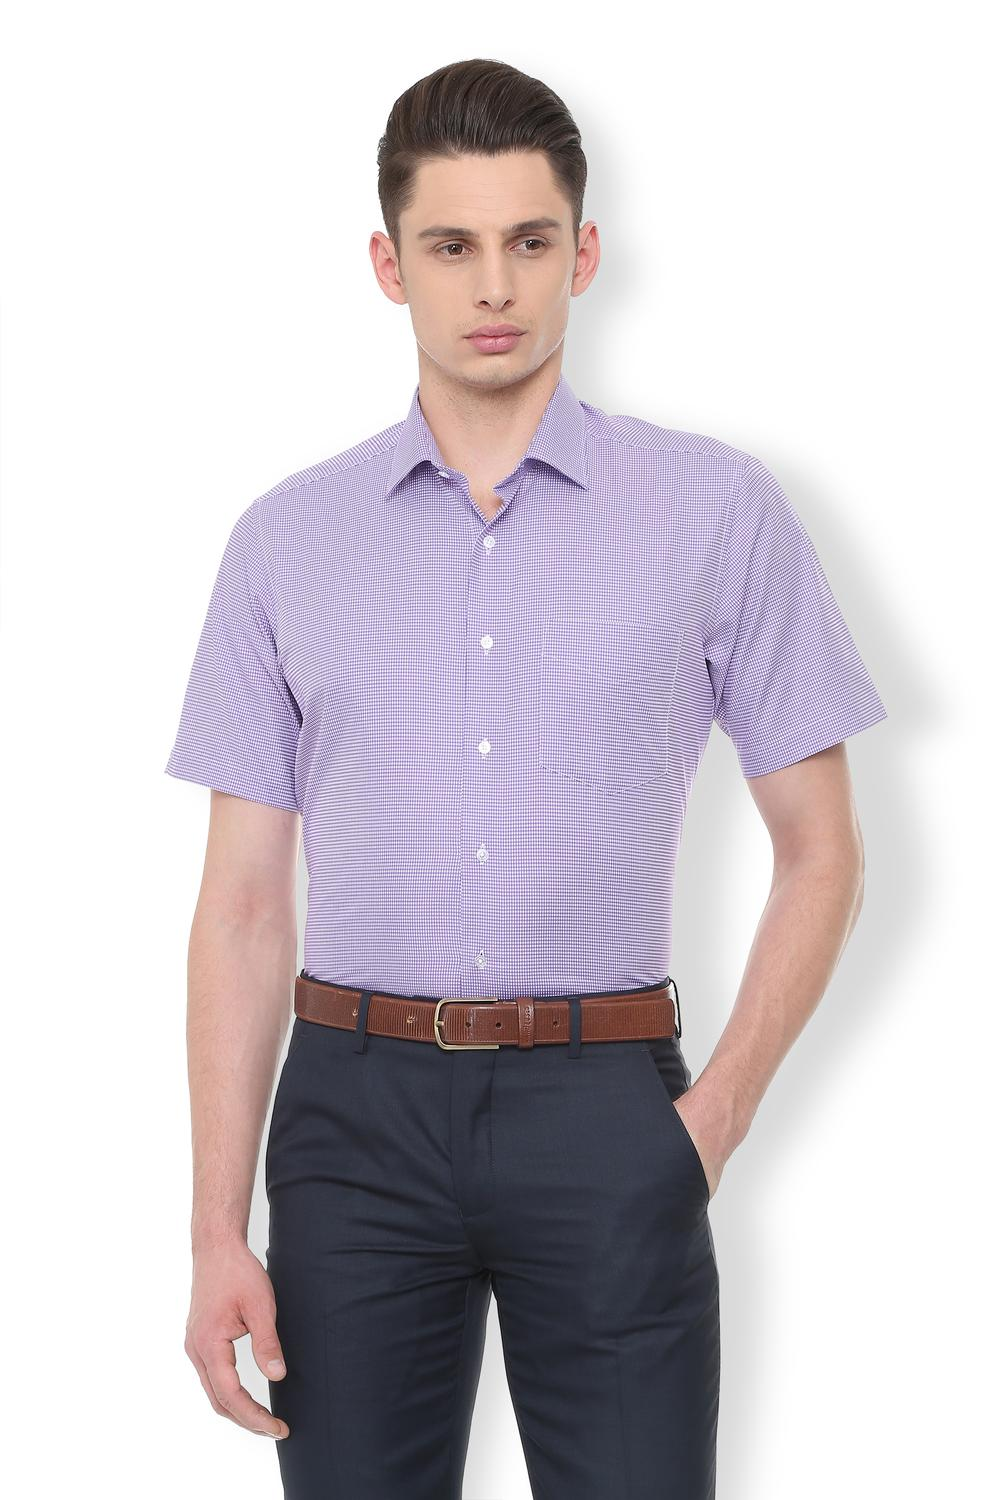 fdfdf73181c Van Heusen Purple Shirt